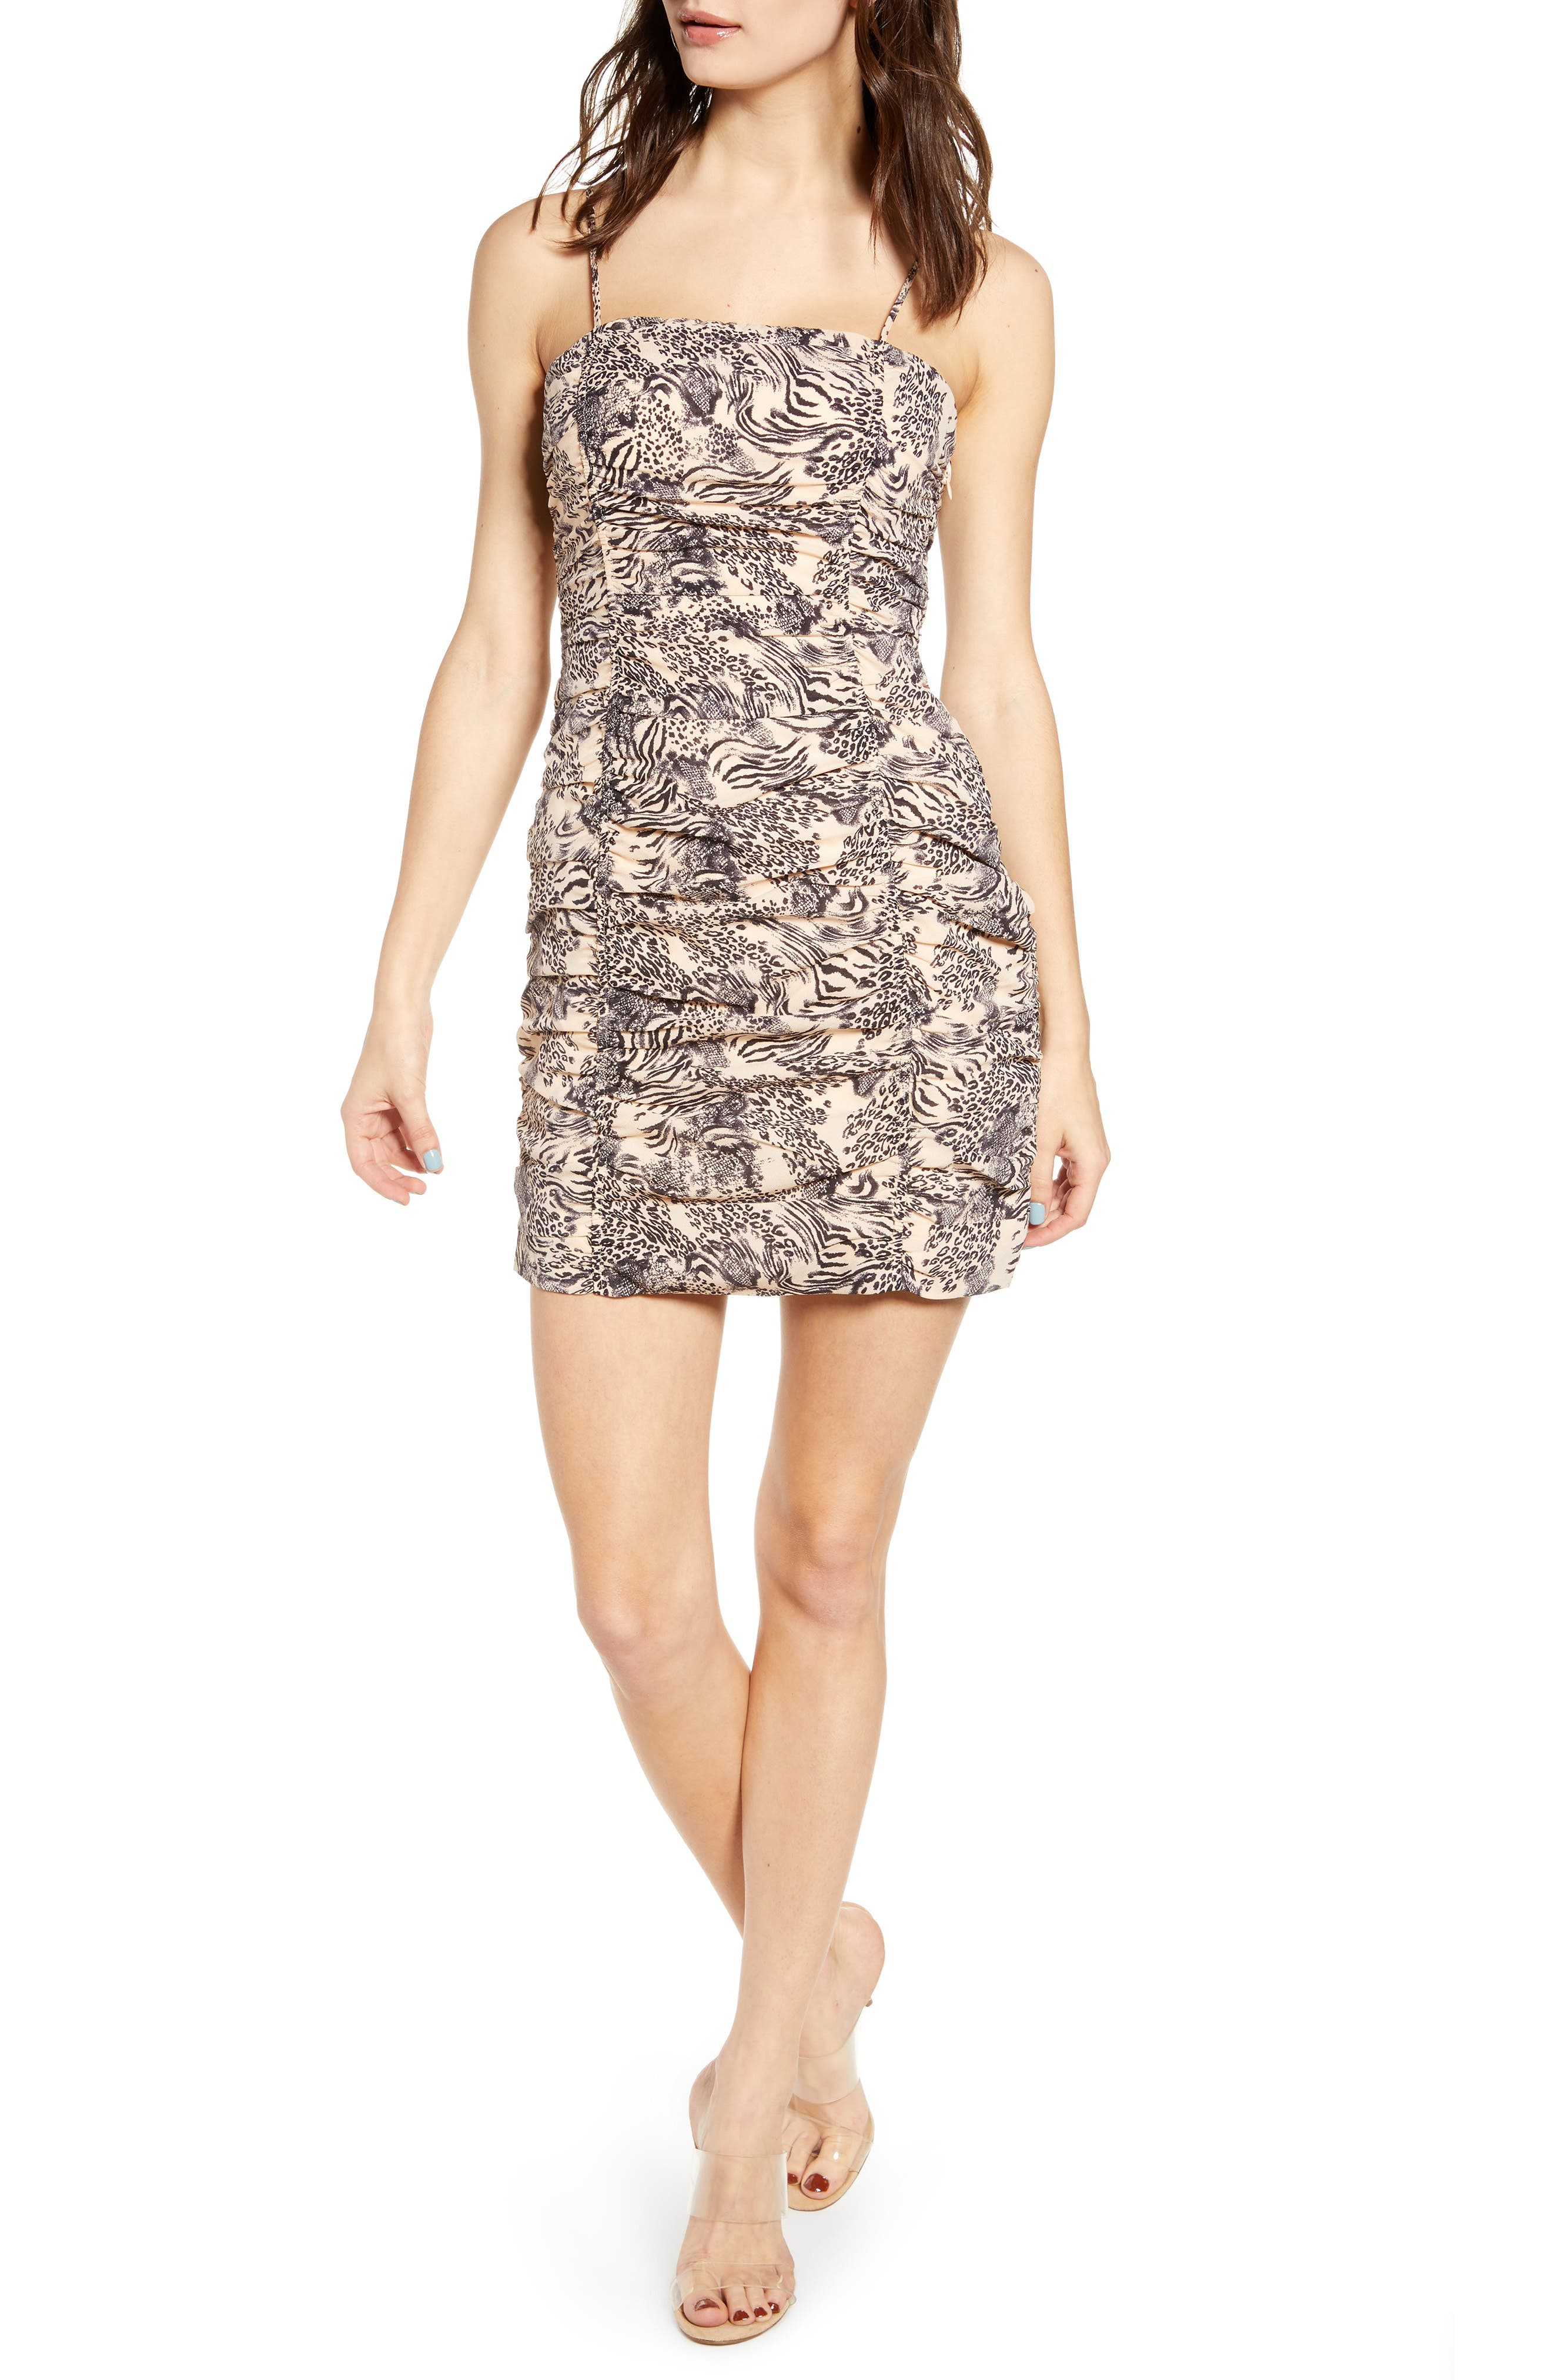 J.o.a. Ruched Body-Con Dress, Beige